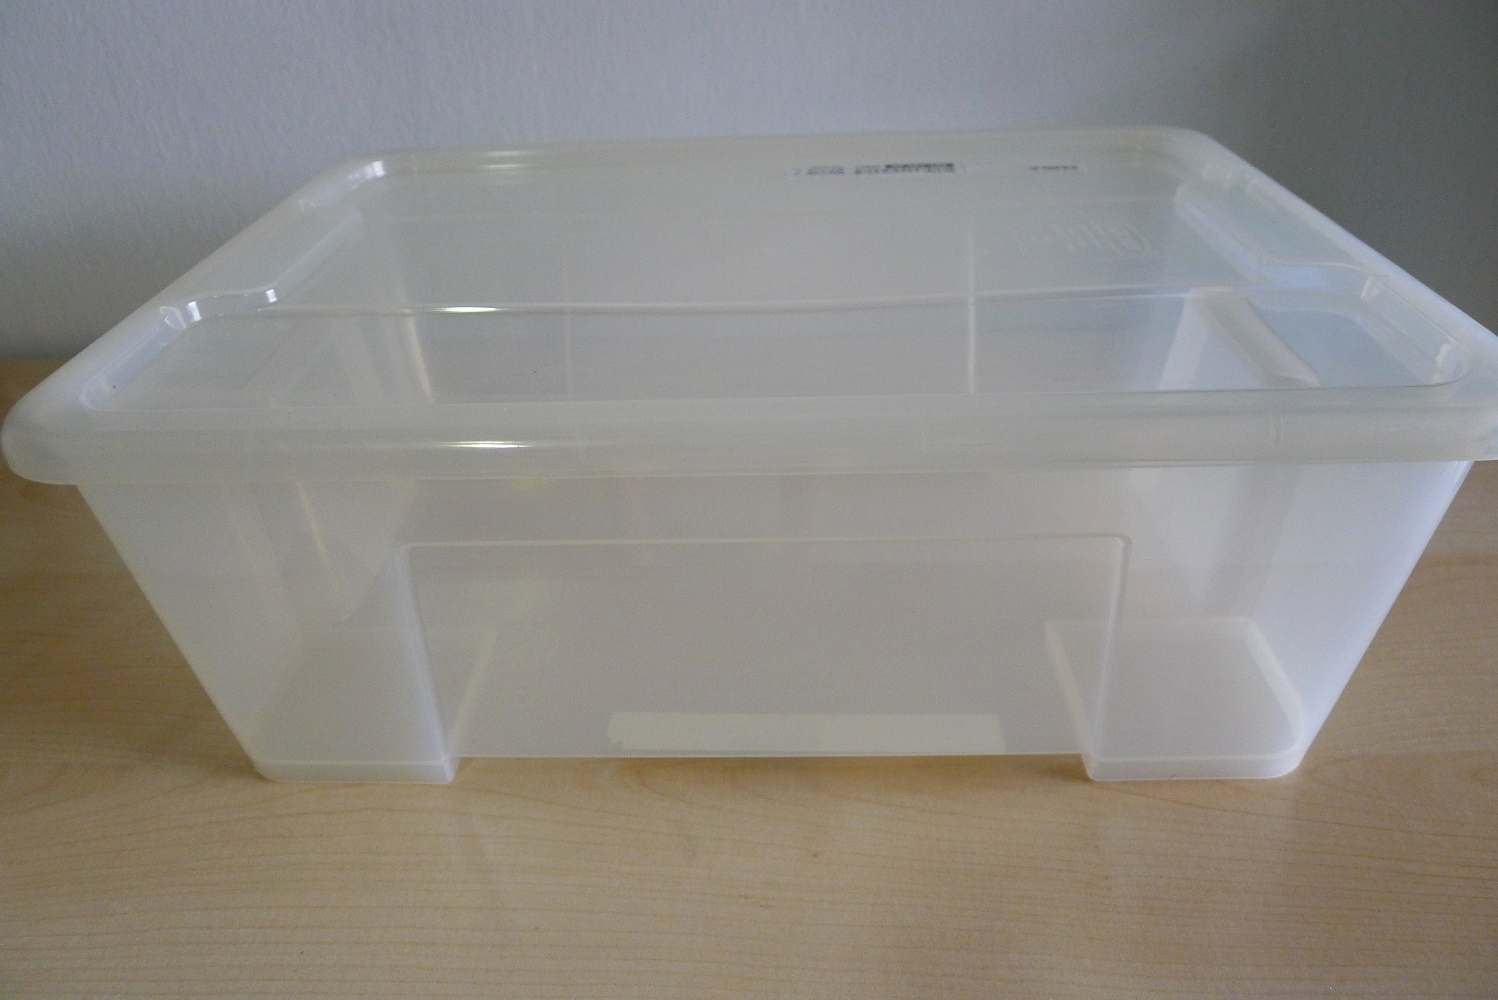 Aufbewahrungsbox Ikea Samla Cool Storage Boxes And Dehumidifiers For Your Toys Collection